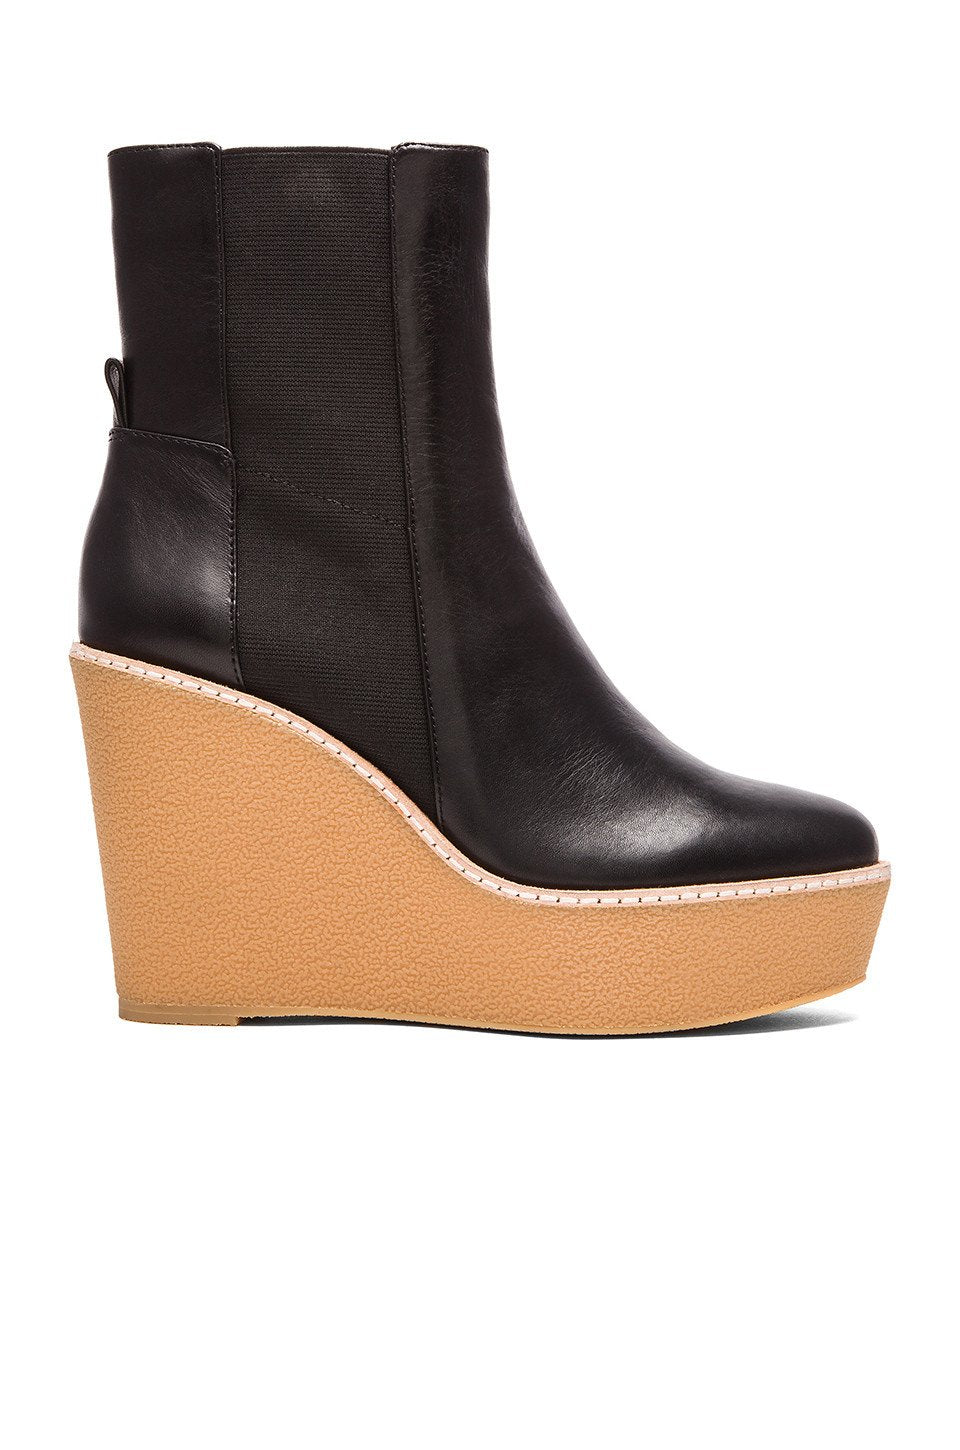 Sandy Bootie - Kustom Label - 1